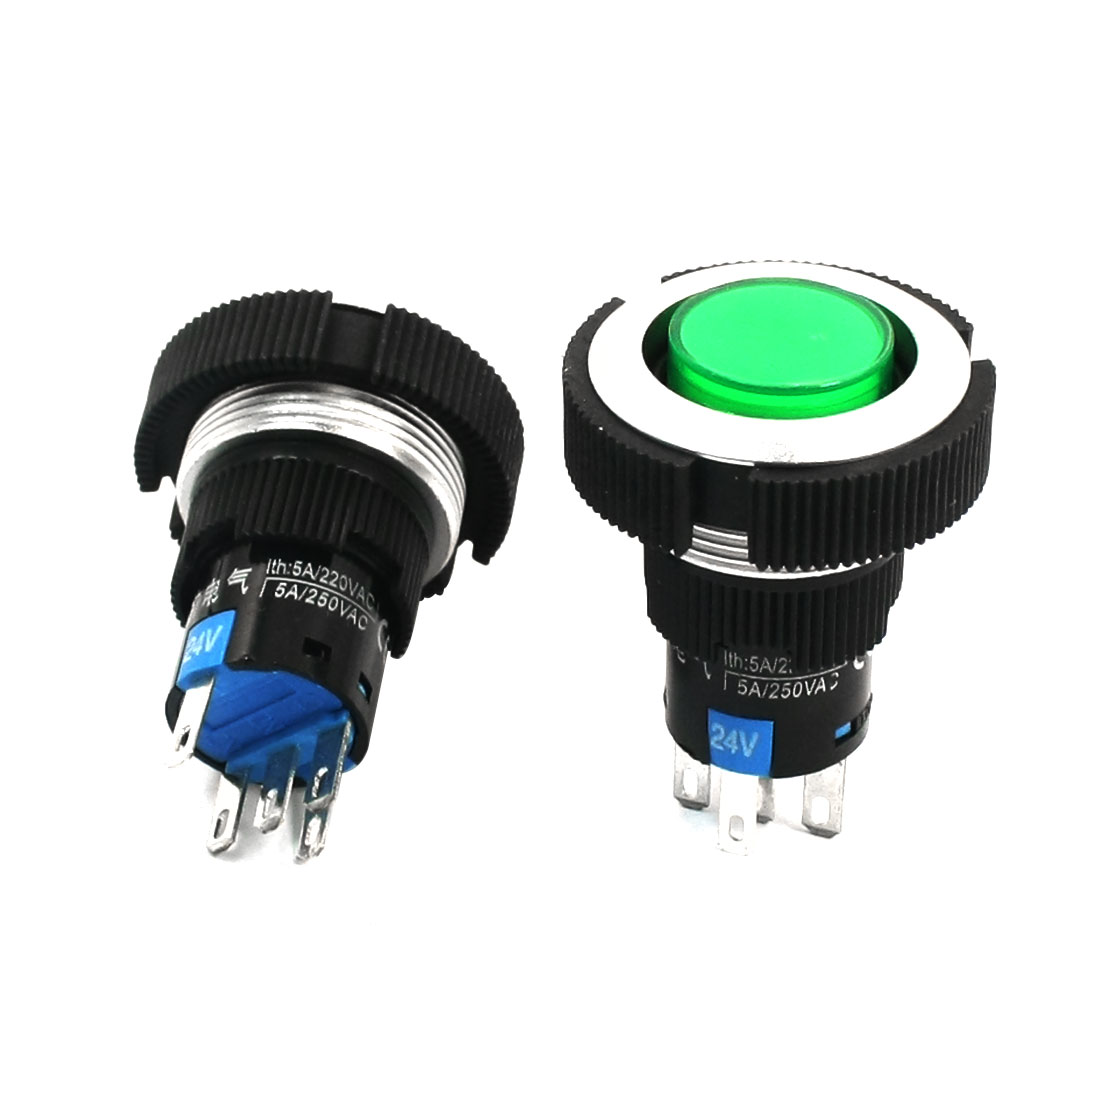 2Pcs AC 220V 5A 22mm Dia Thread Panel Mounting SPDT 1NO 1NC 5Pin Soldering Self-Locking Green Lamp Push Button Switch